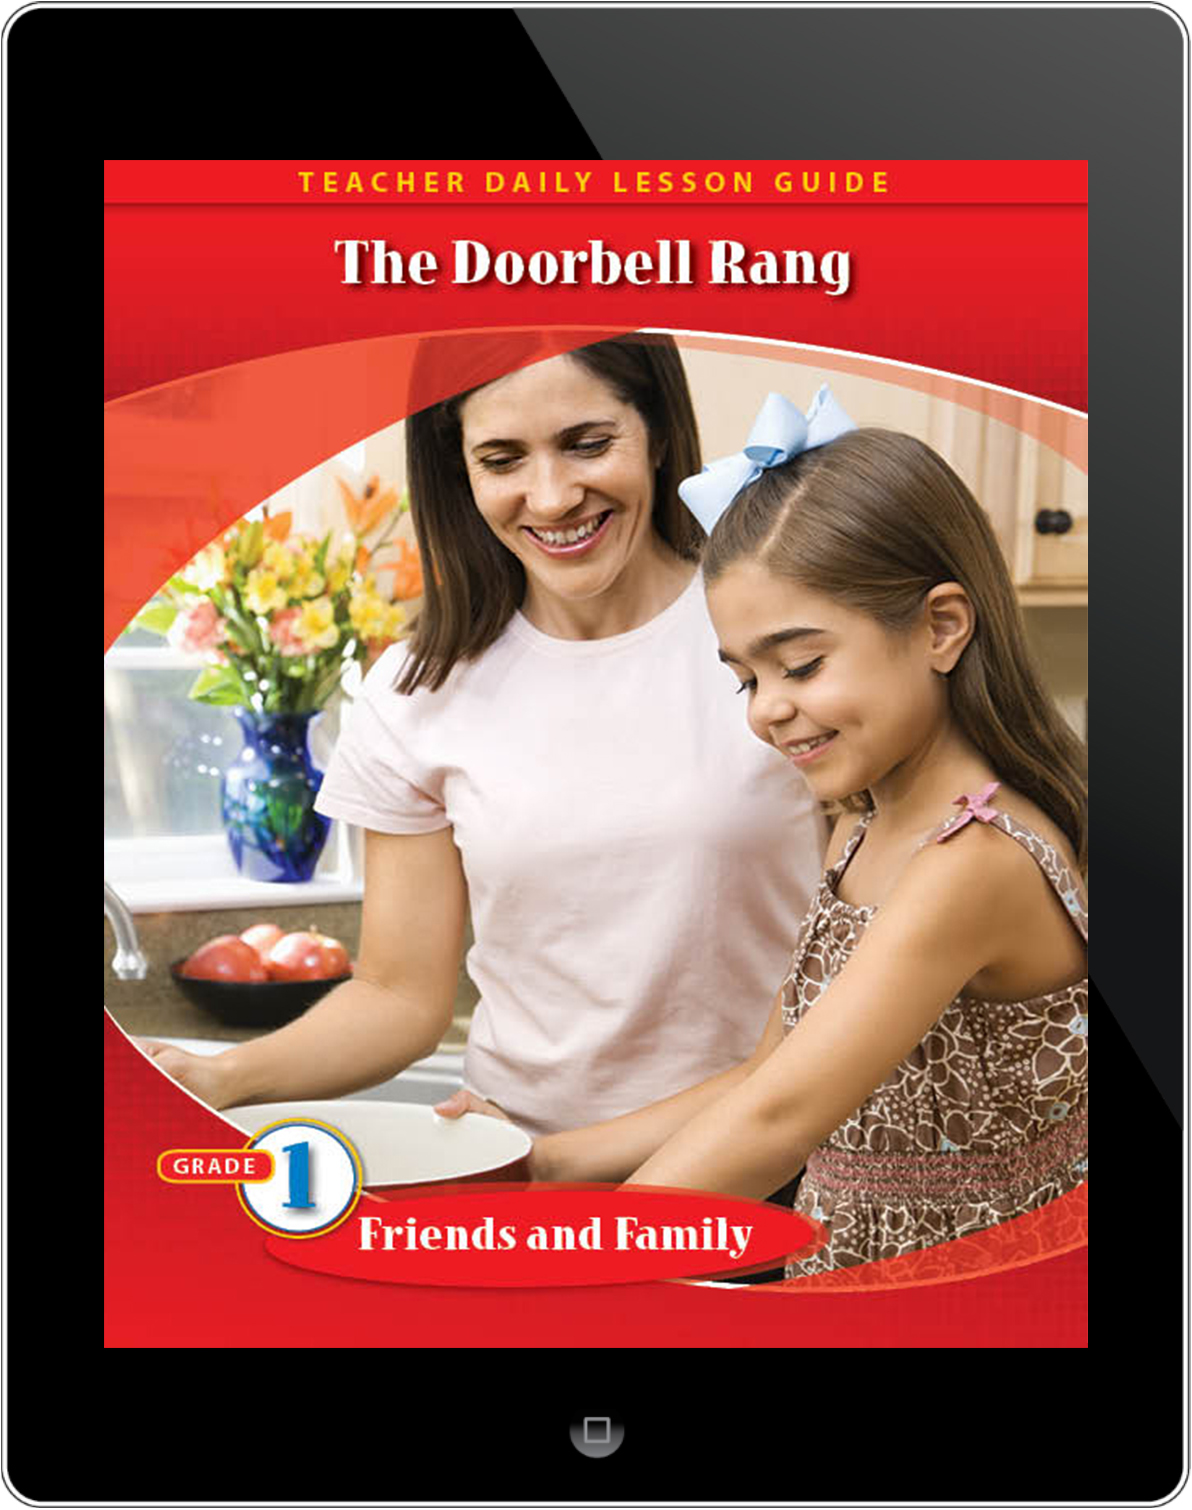 Pathways2.0 Grade 1 Friends and Family Unit: The Doorbell Rang Daily Lesson Guide 5 Year License